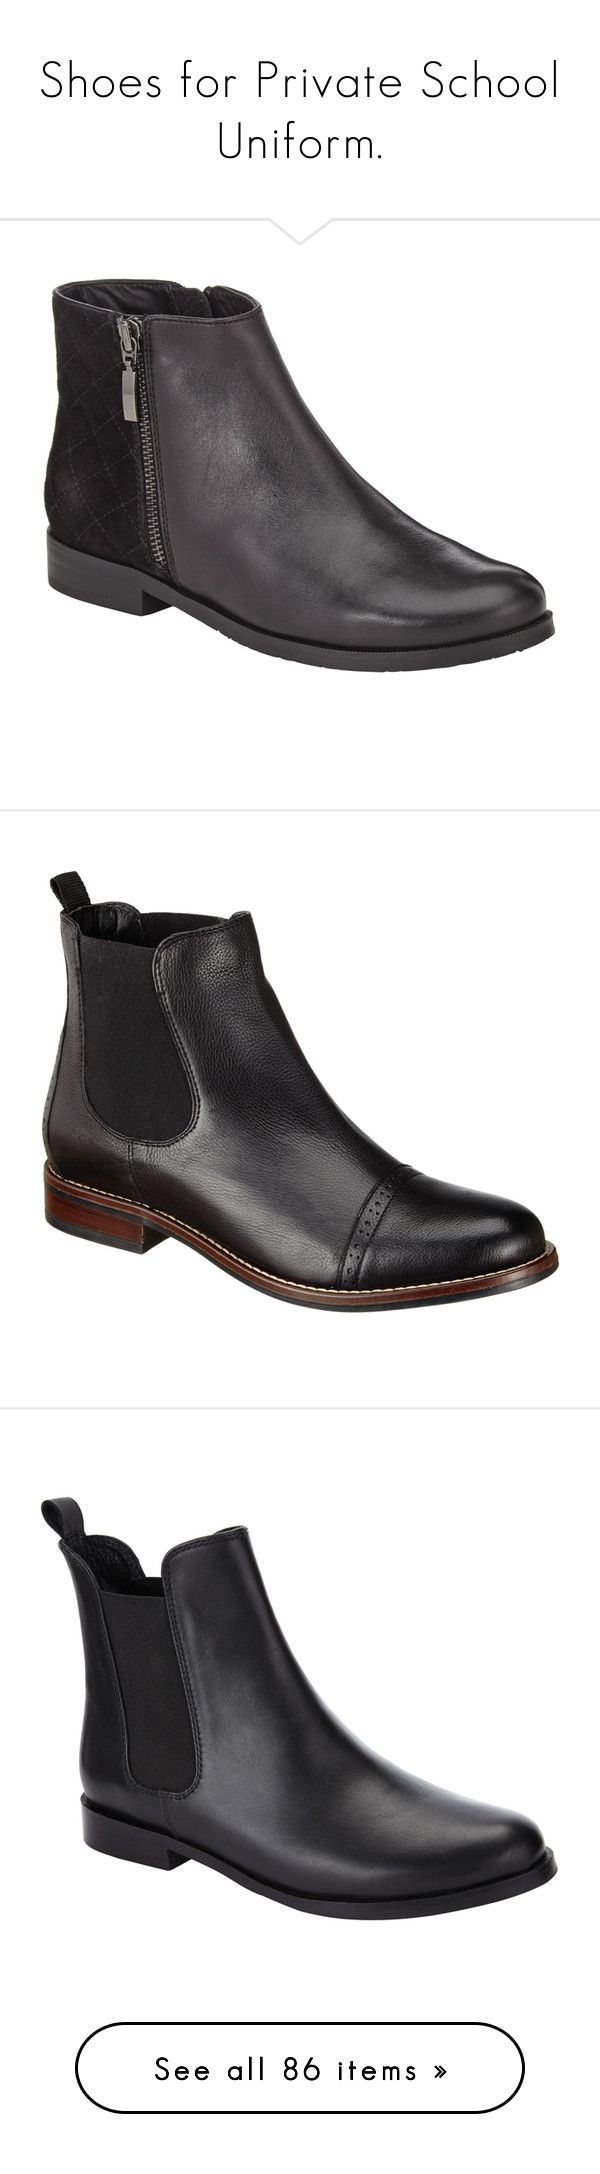 """Shoes for Private School Uniform."" by twoidjitsinthesalvageyard ❤ liked on Polyvore featuring shoes, boots, ankle booties, faux leather booties, black leather booties, flat booties, flat ankle boots, short black boots, black and black chelsea boots"